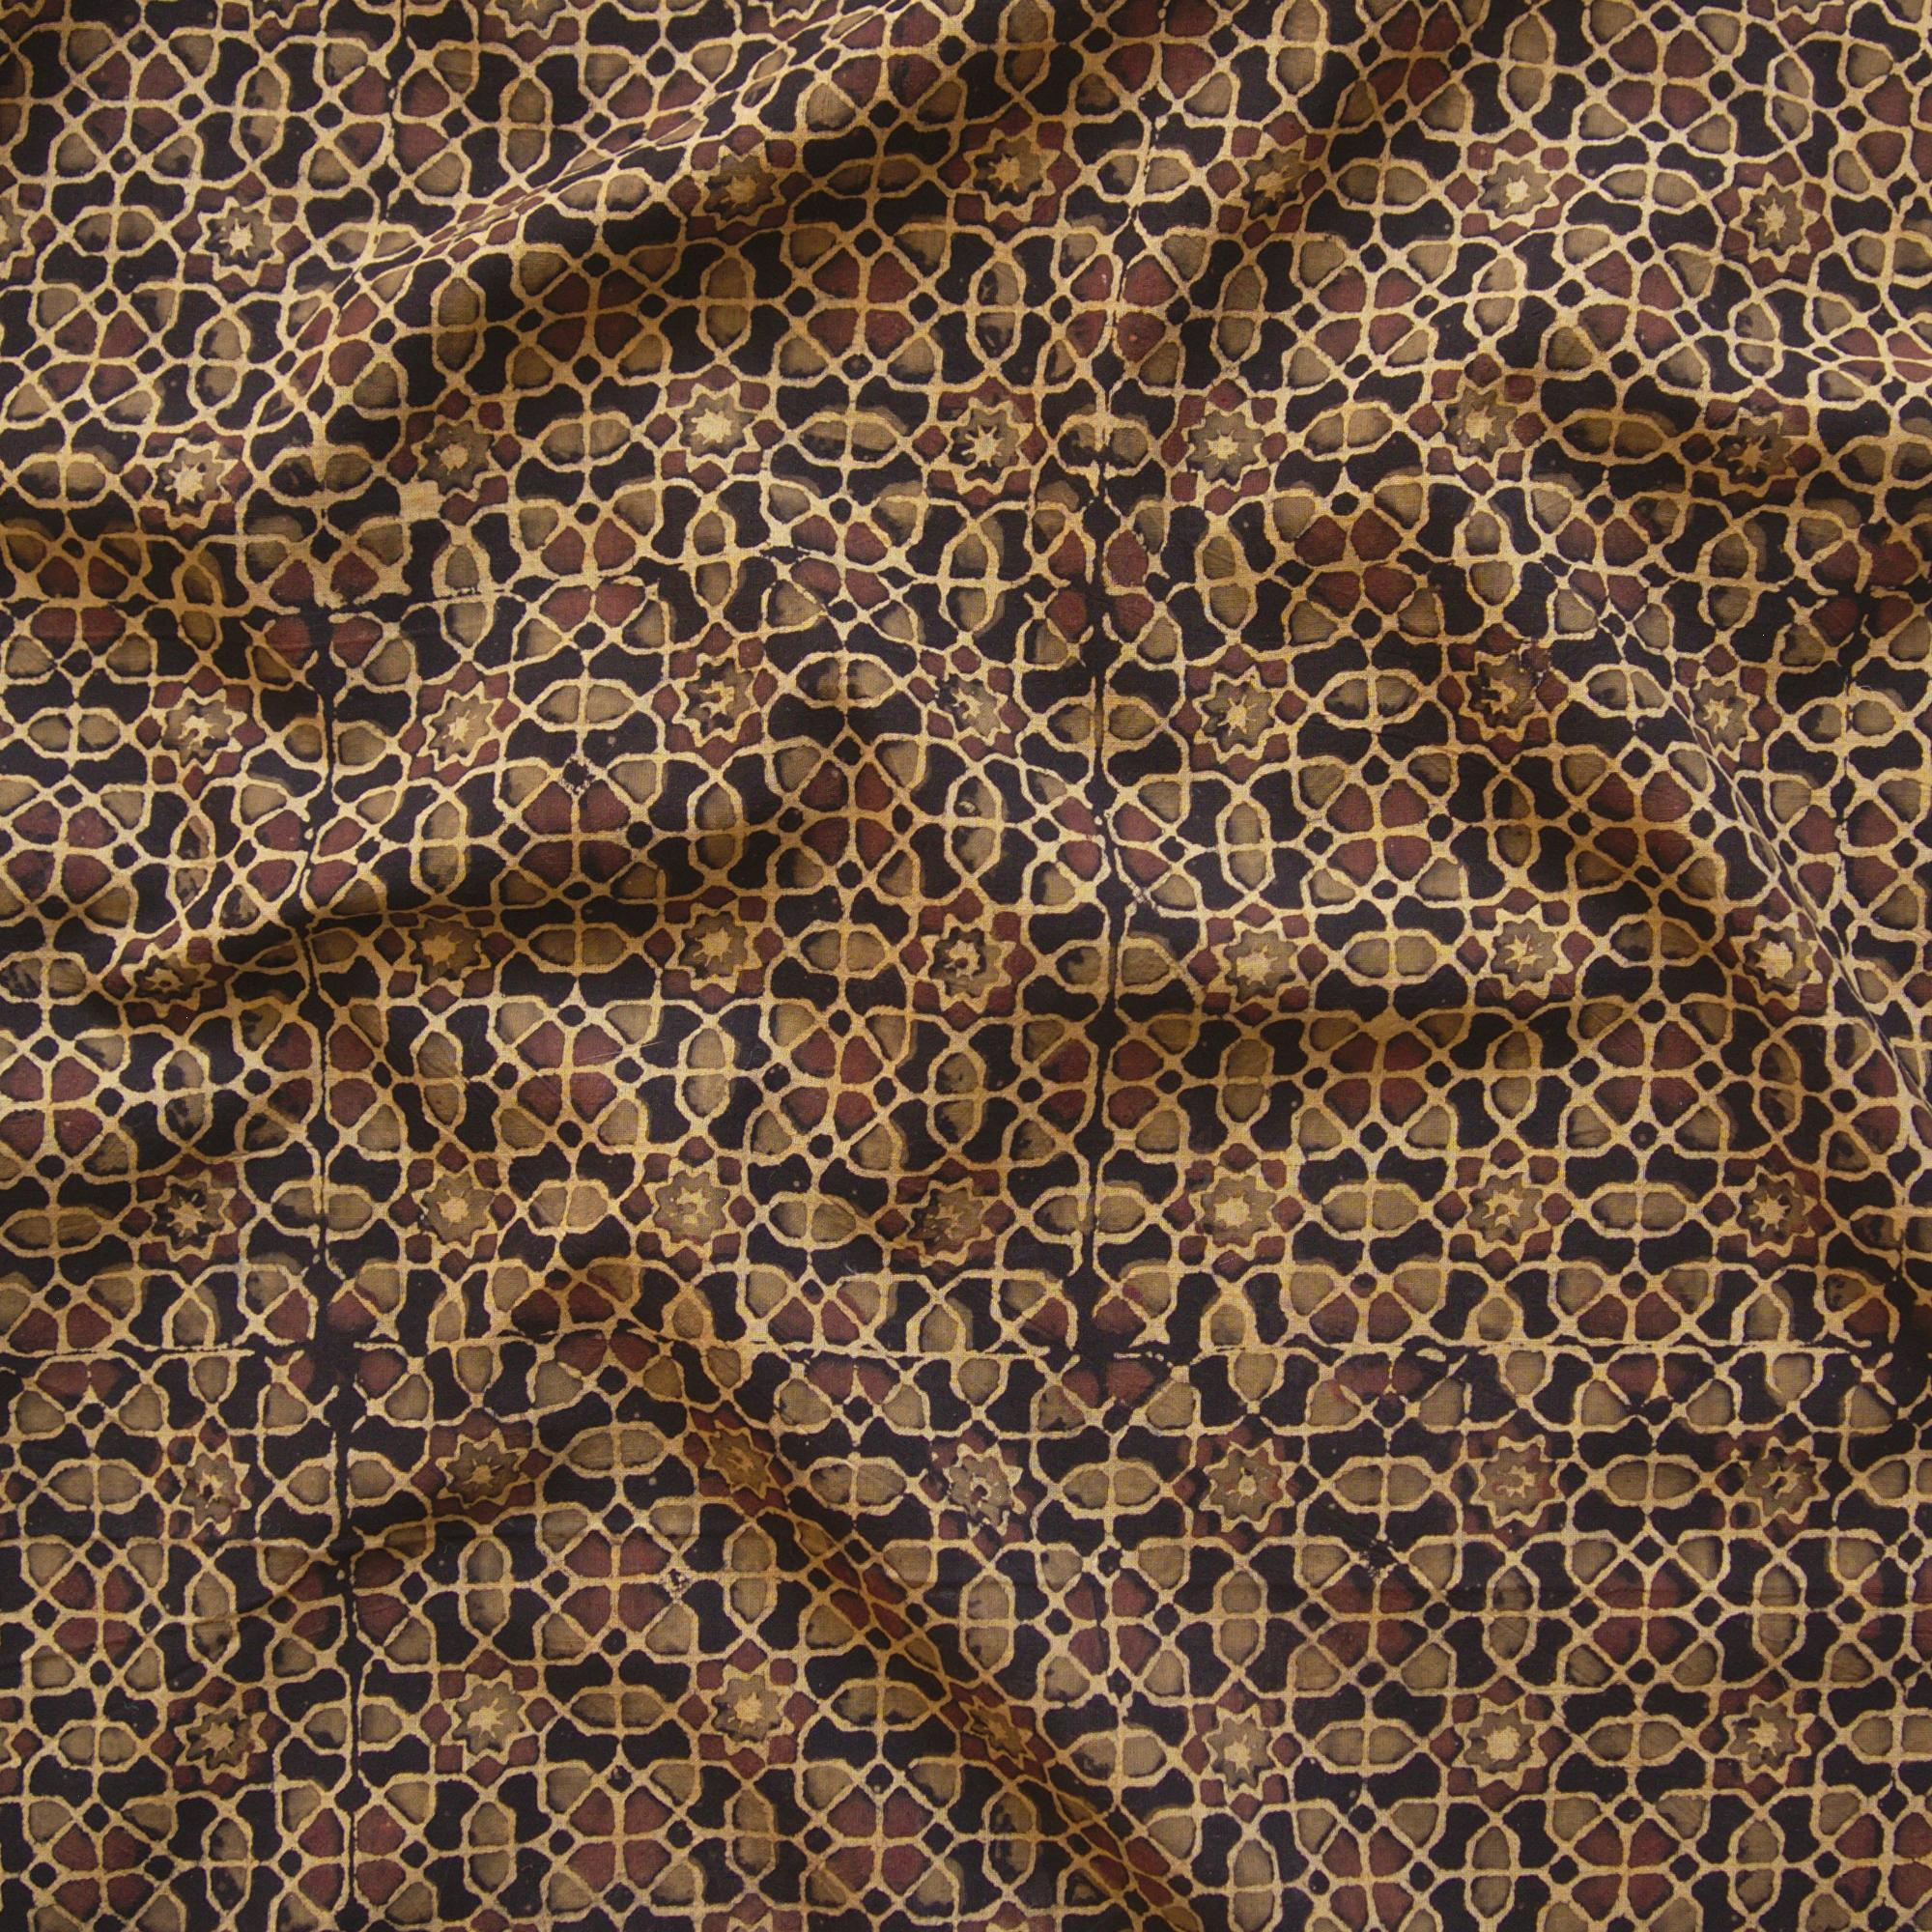 Block Printed Fabric, 100% Cotton, Ajrak Design: Iron Black Base, Green, Coffee Brown Octagon. Contrast